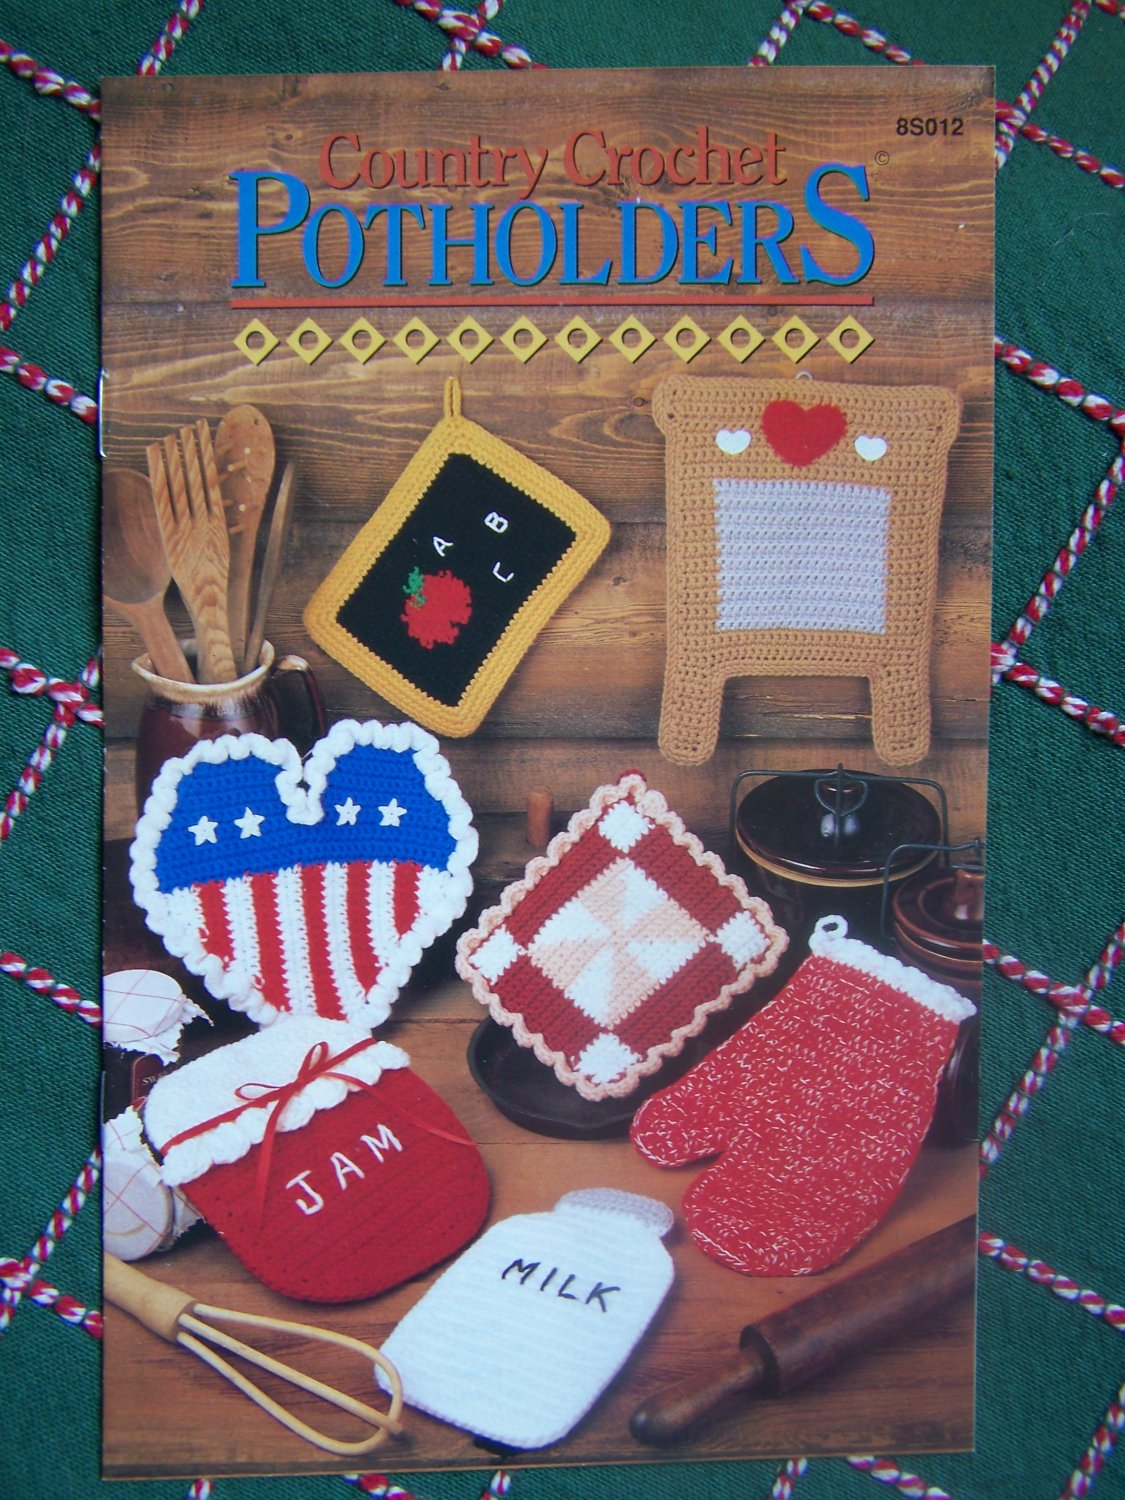 S&H 0 USA 7 Country Crocheted Potholder Patterns Annie's Crochet Shaped Pot Holders